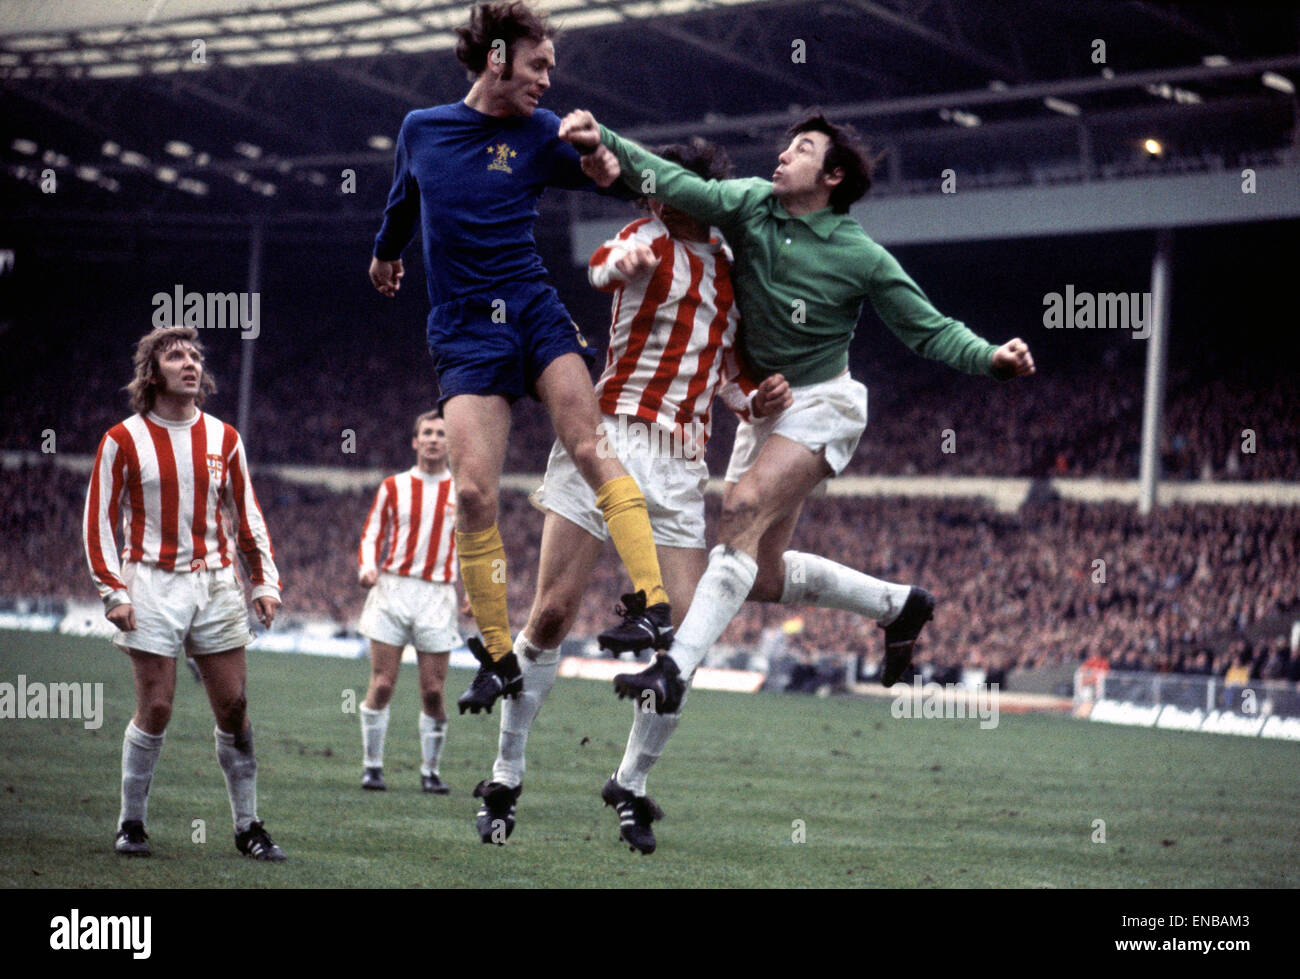 League Cup Final. Stoke City 2 v. Chelsea 1. John Dempsey and Gordon Banks. 4th March 1972. - Stock Image